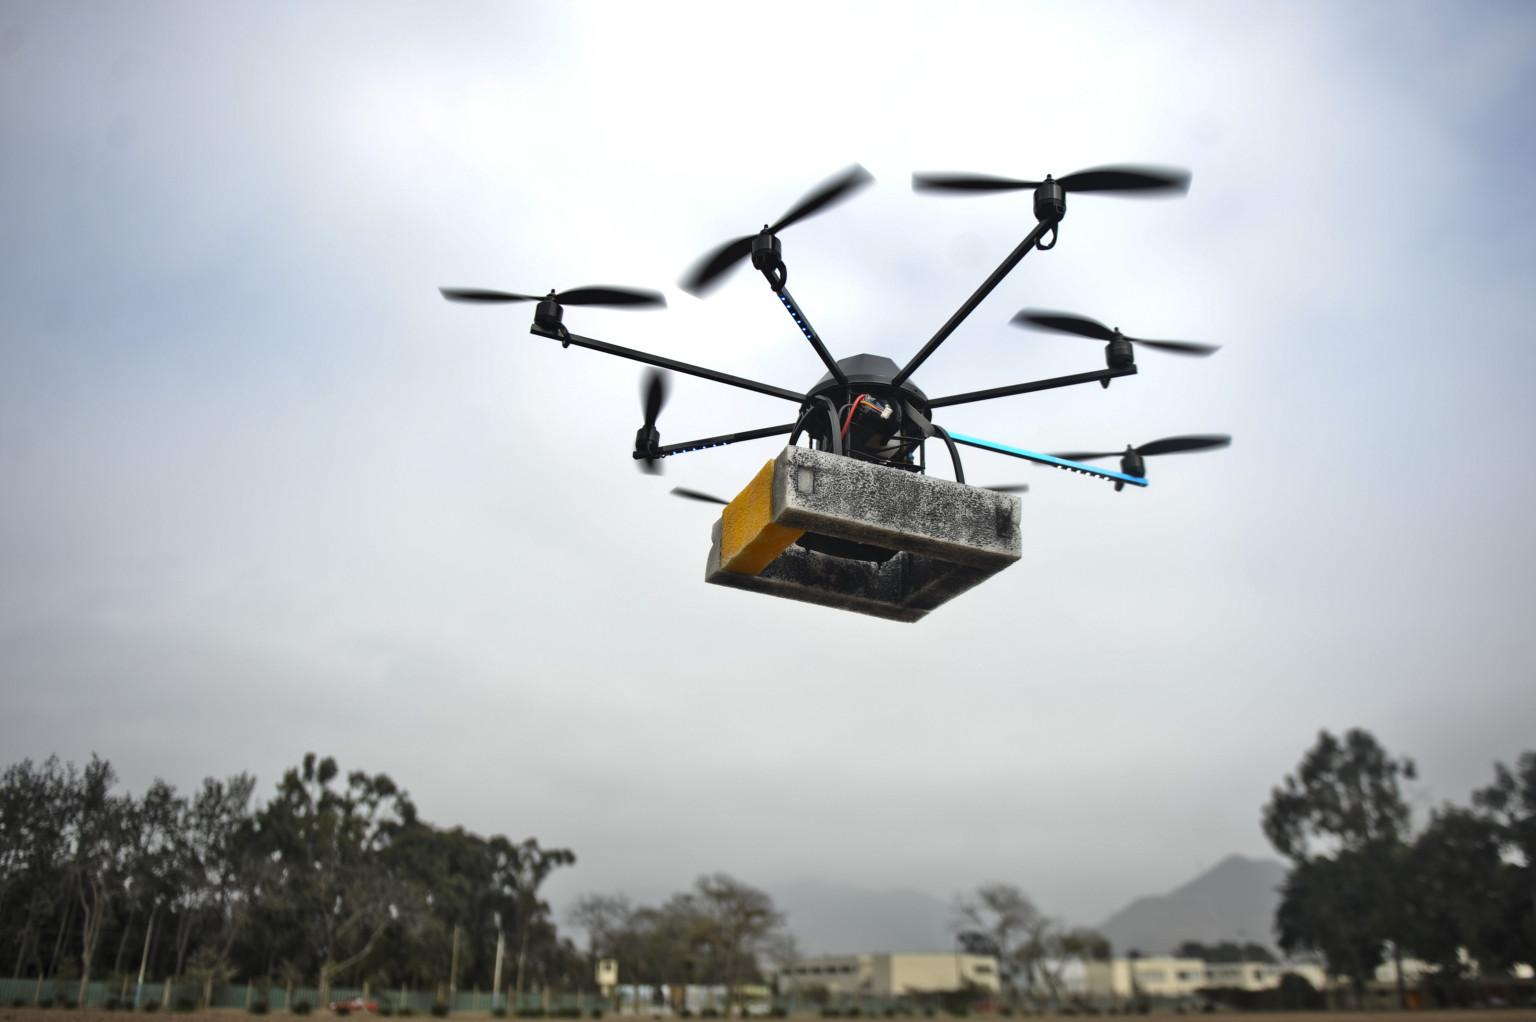 drone the drug with Amazon Inaugura Su Tienda Para  Prar Drones on Brittany Toddcourse Projectschedule I And Ii Drugs Recovered 54448714 further Drug Dealer Arrested Baltimore further Drone Wars X 47b Makes First Successful Landing likewise Sniper Ghost Warrior 3 Ps4 additionally Mephedrone Portal.